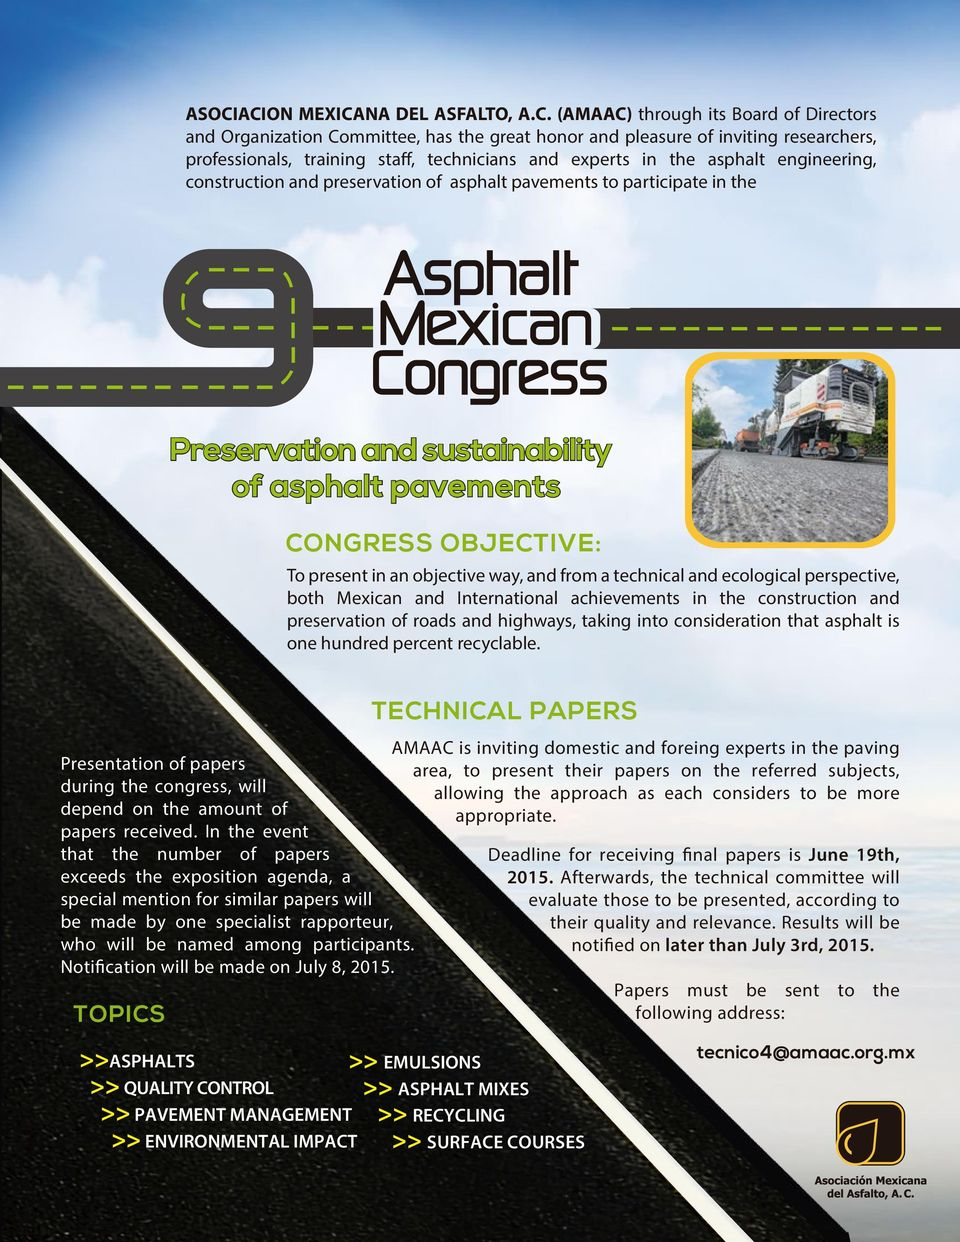 CONGRESS OBJECTIVE: To present in an objective way, and from a technical and ecological perspective, both Mexican and International achievements in the construction and preservation of roads and